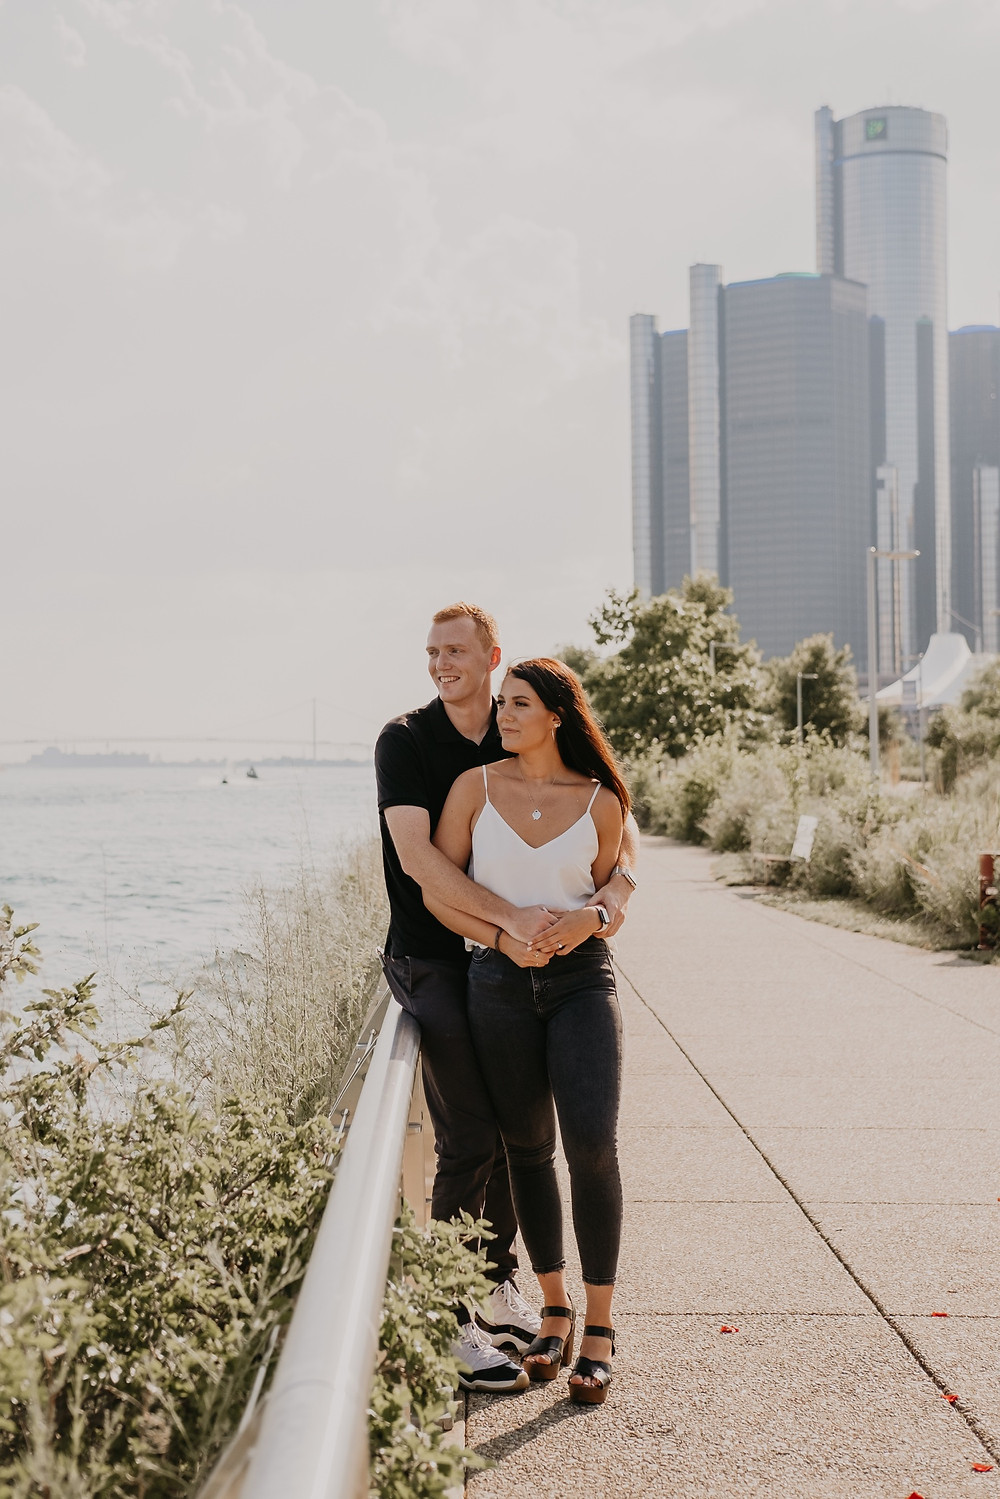 Detroit Riverwalk engagement in Downtown Detroit. Photographed by Nicole Leanne Photography